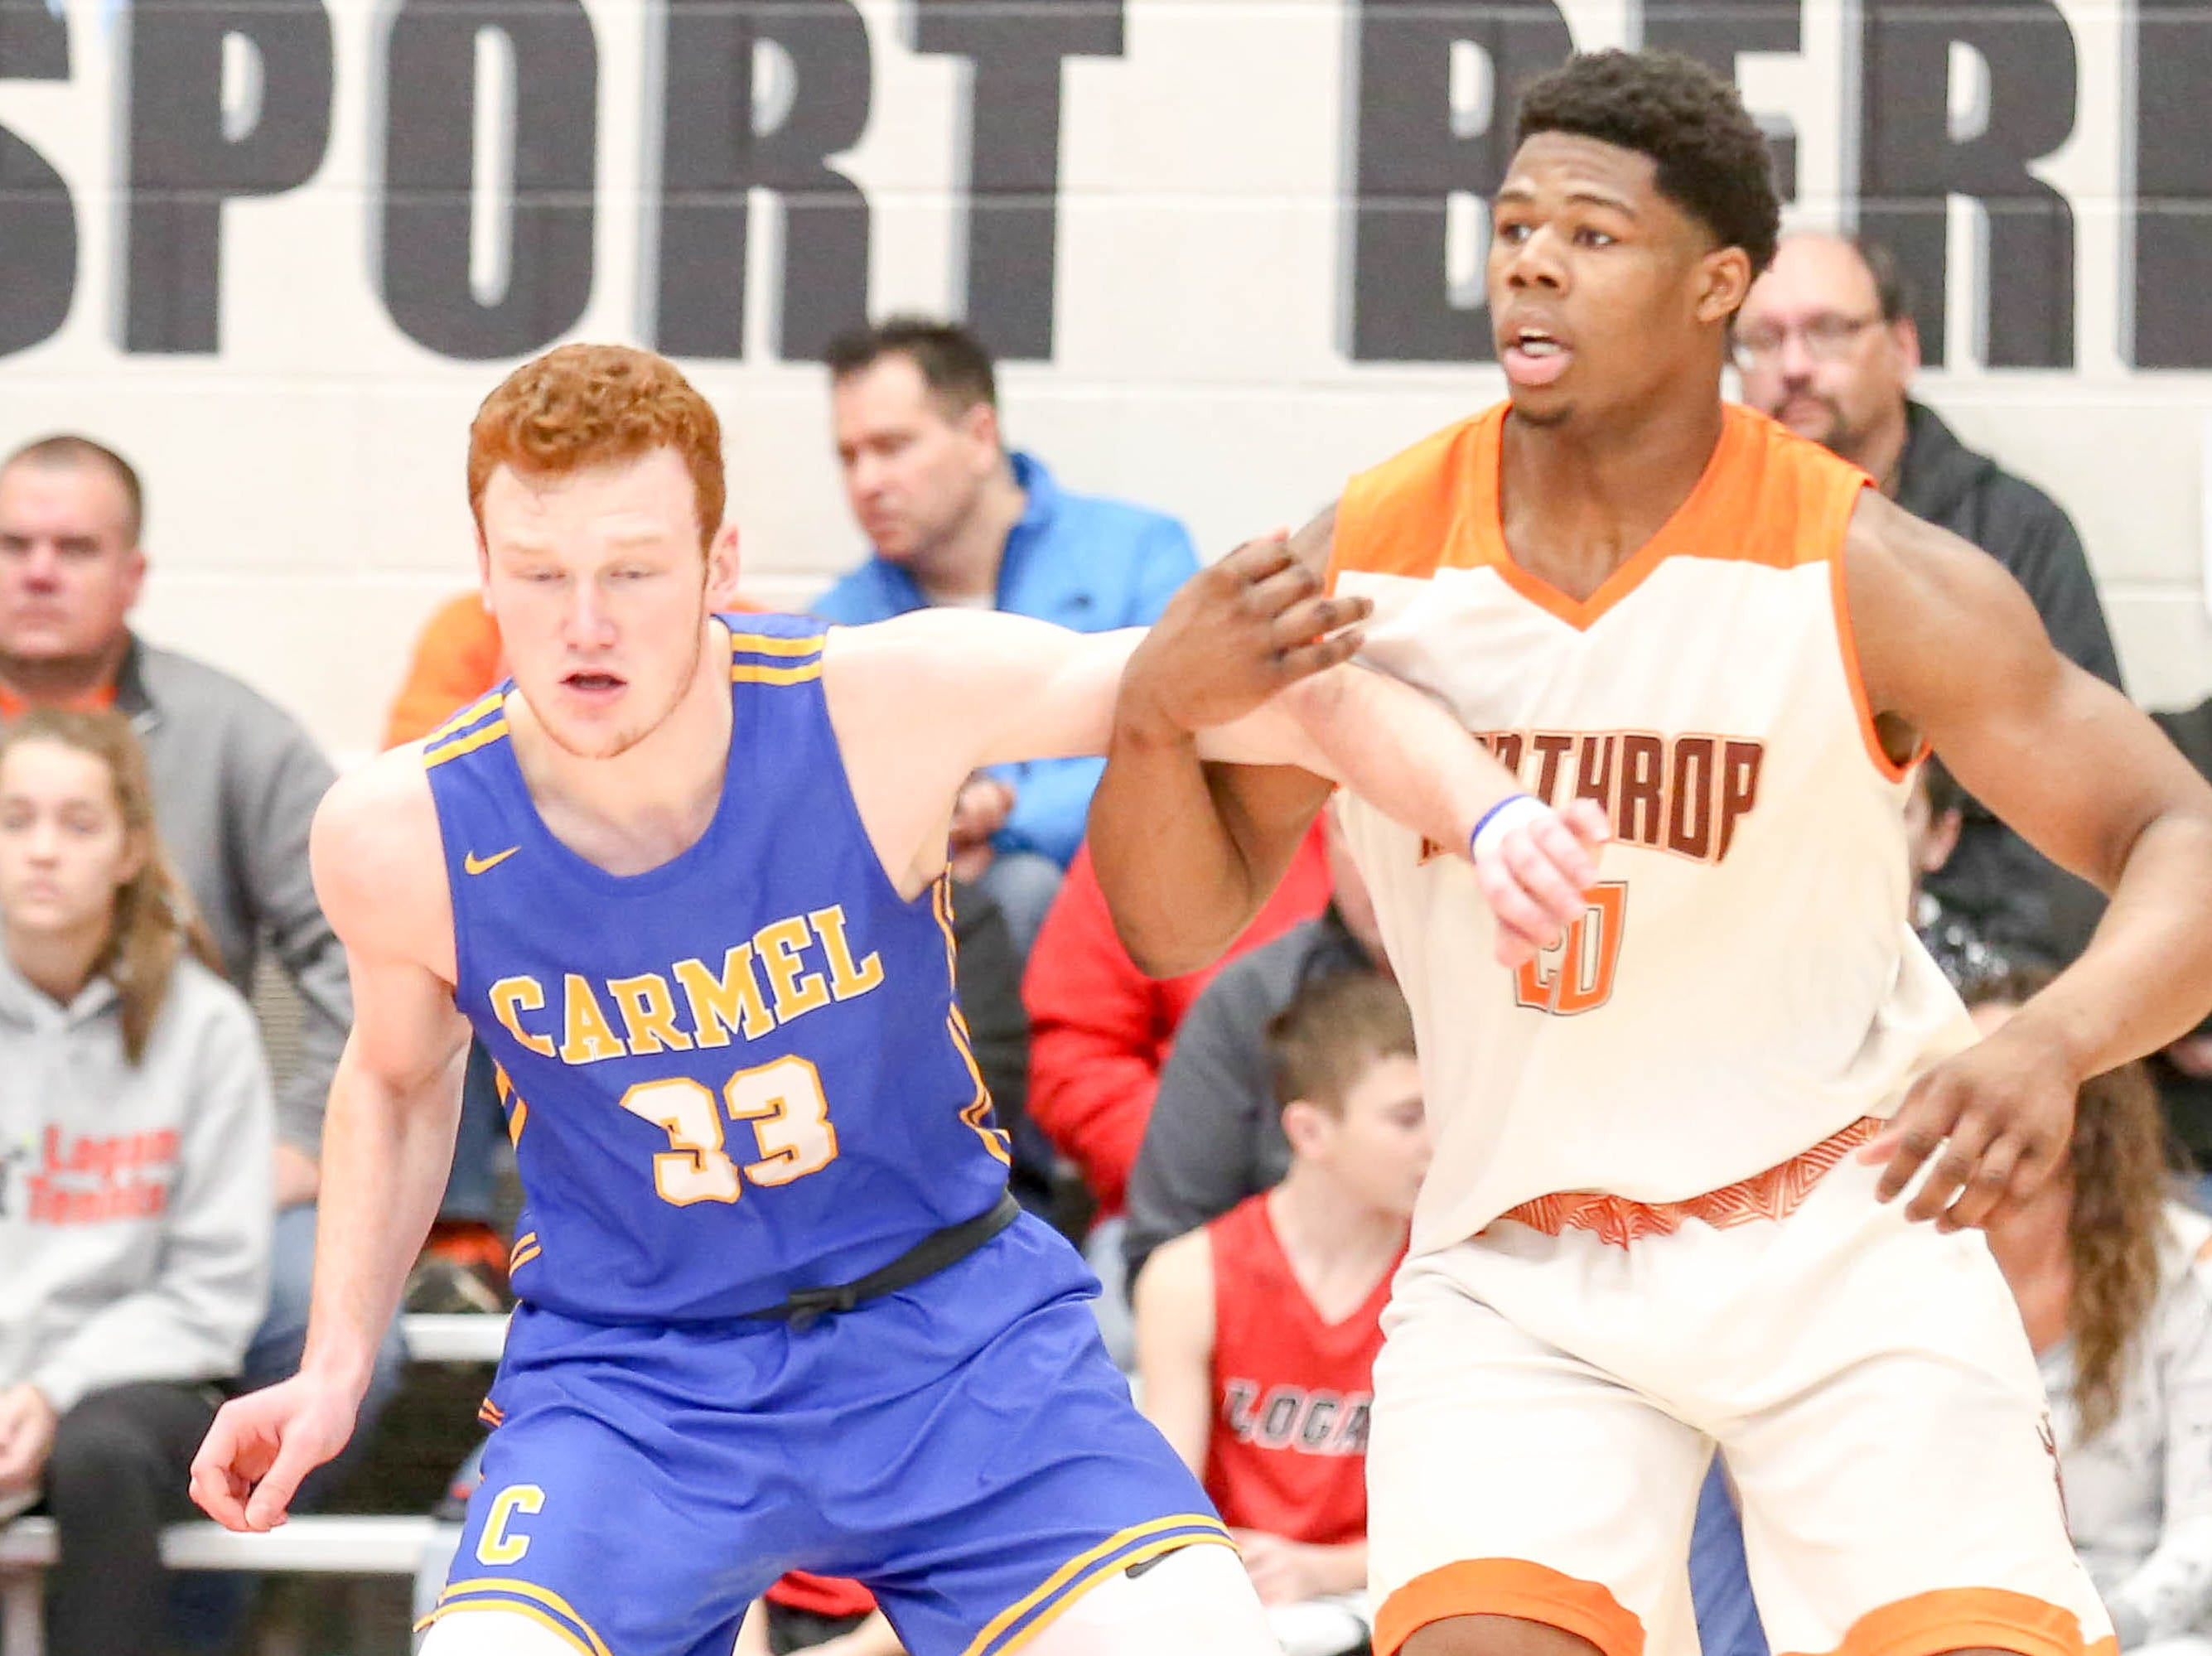 Carmel's John Michael Mulloy (33) and Forth Wayne Northrop Sydney Curry (20) battle for position during the second half of Carmel vs. Fort Wayne Northrop High School in the IHSAA Varsity Boys Regional Semifinals held at Logansport High School, March 9, 2019.